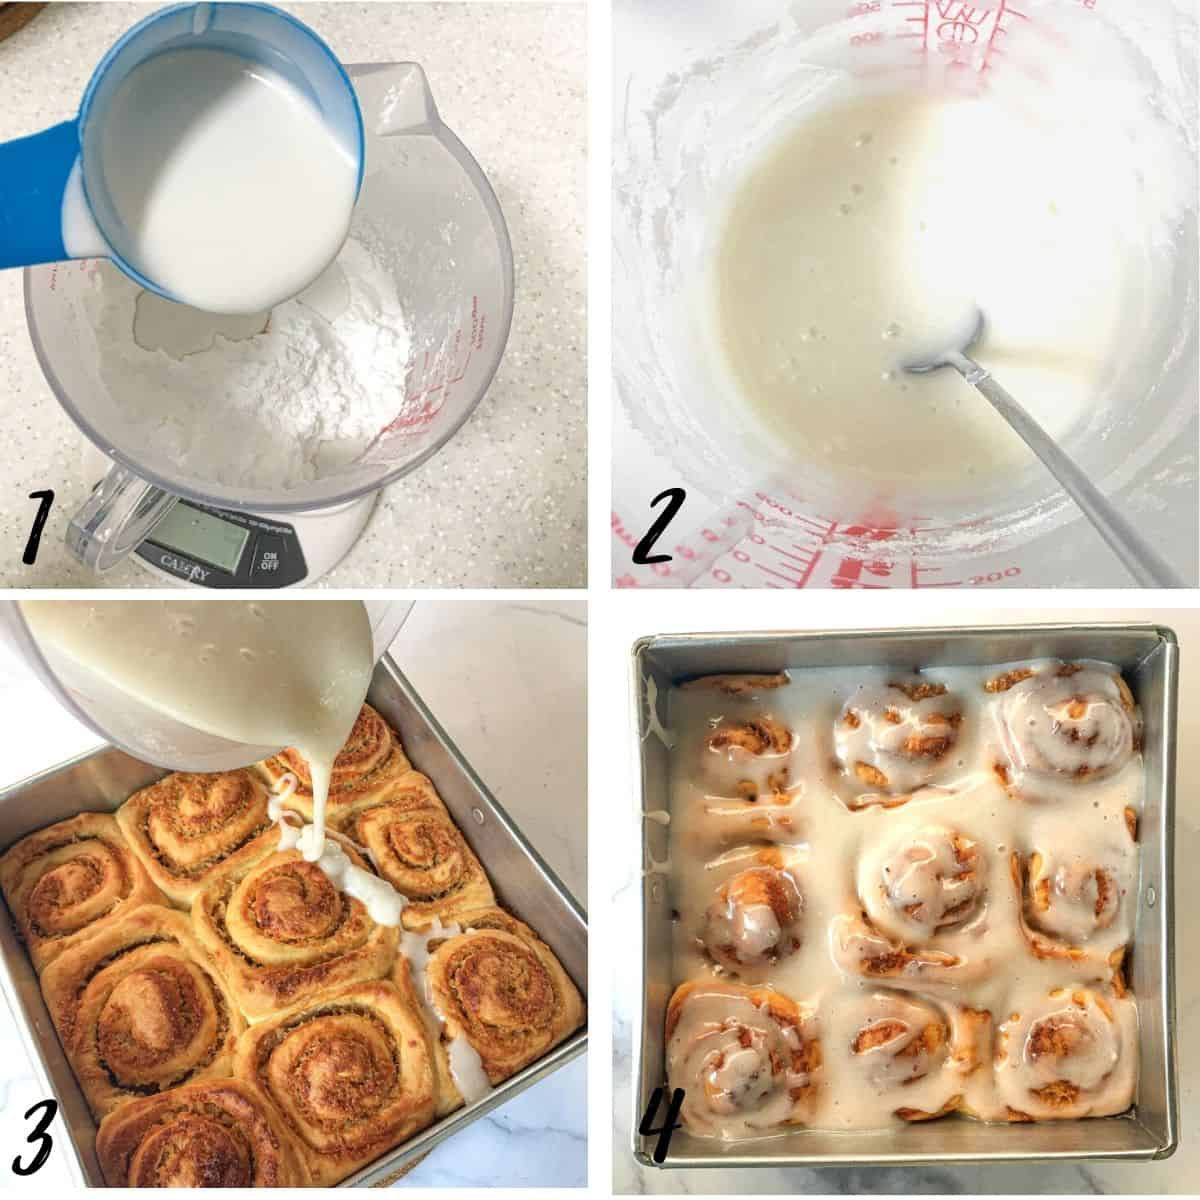 A poster of 4 images showing how to make coconut glaze and how to pour it onto coconut rolls